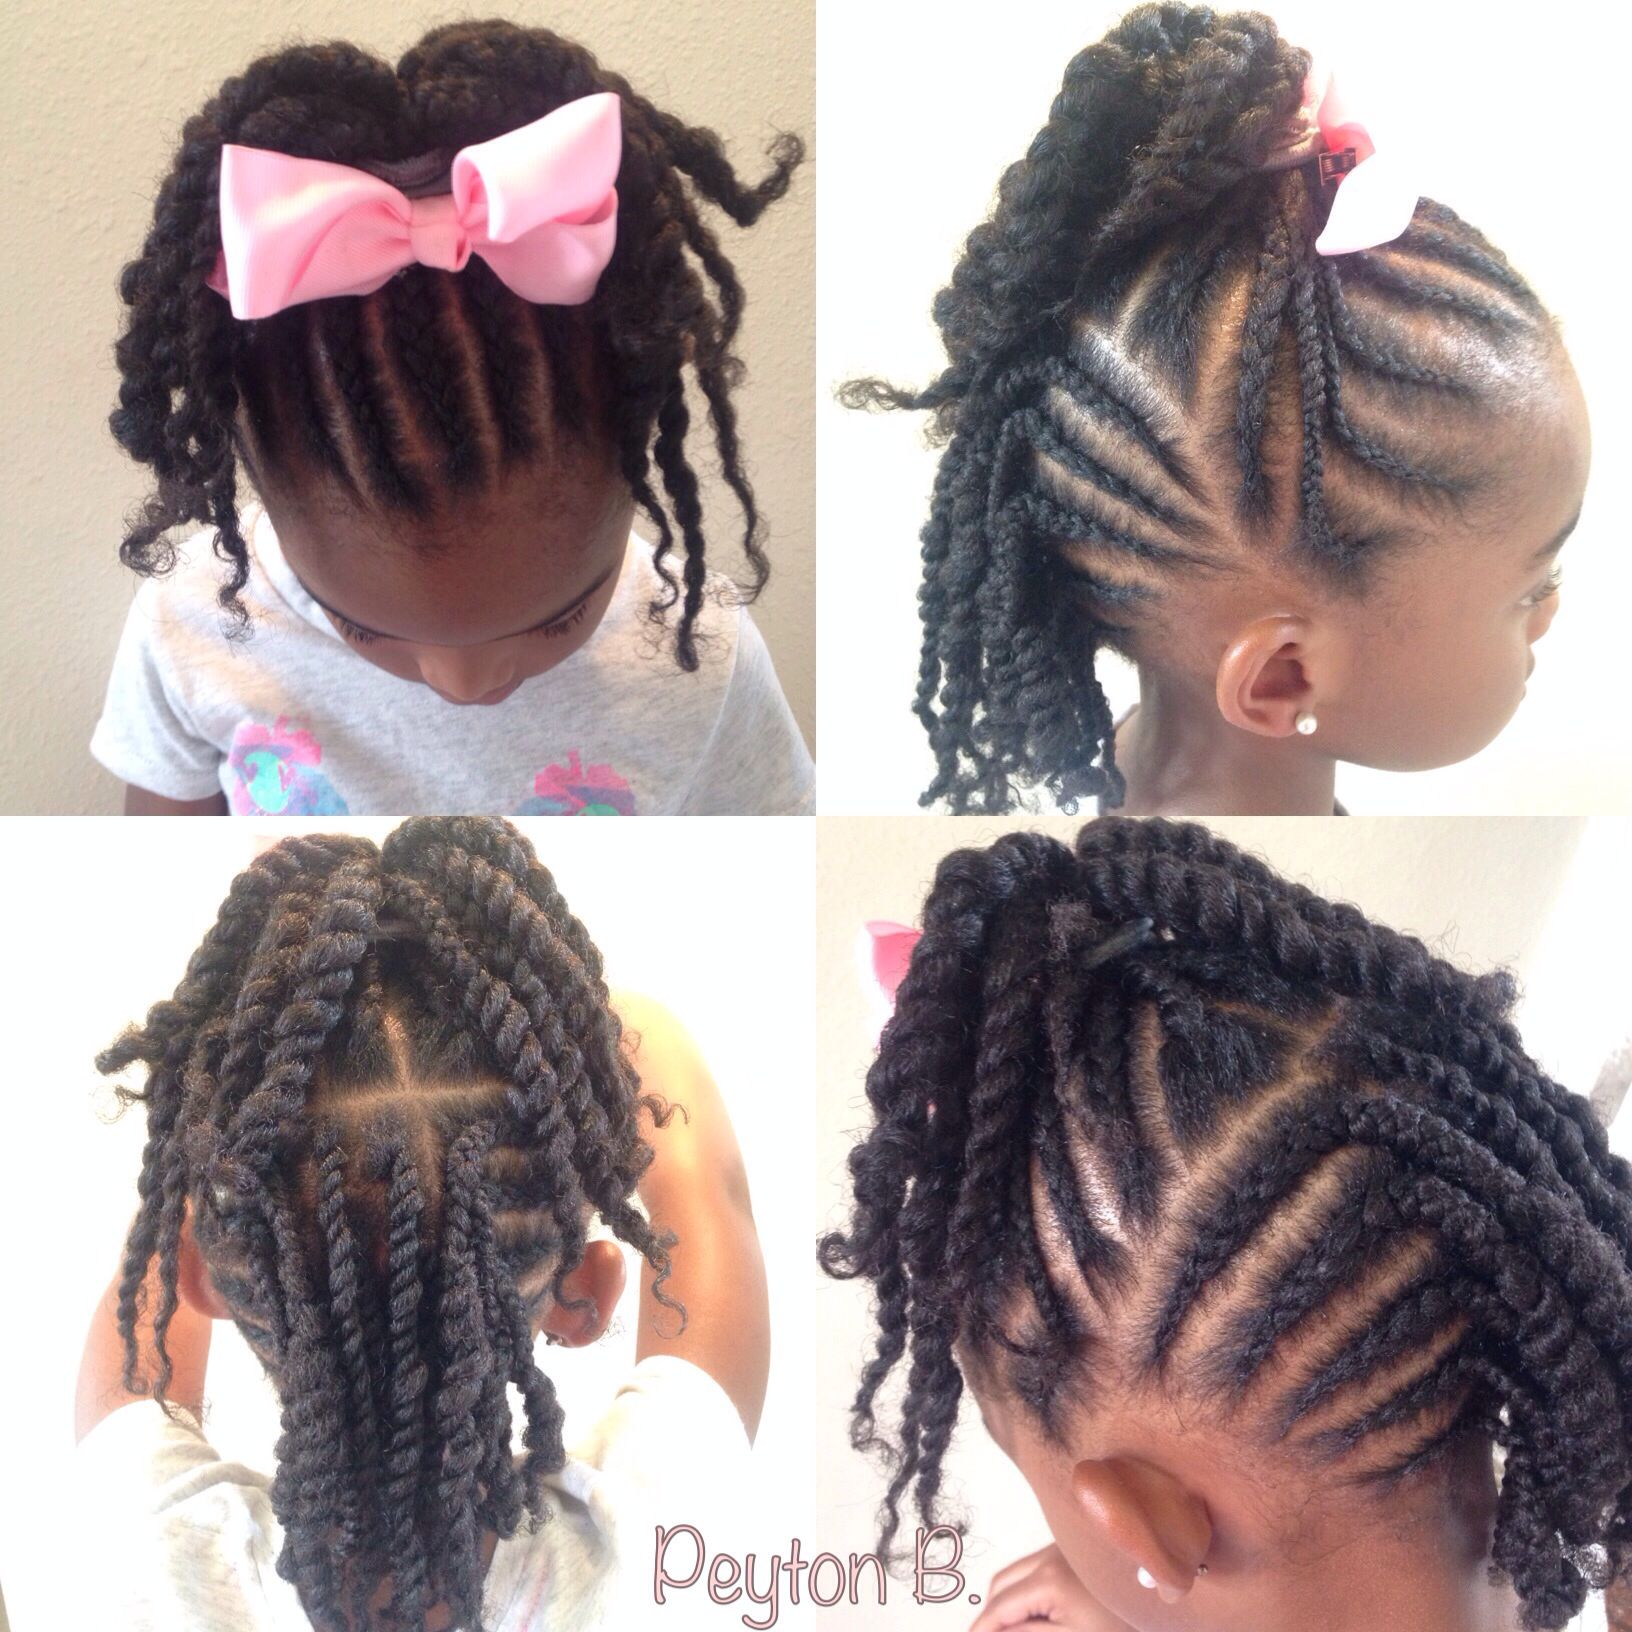 top cornrows with ends twisted